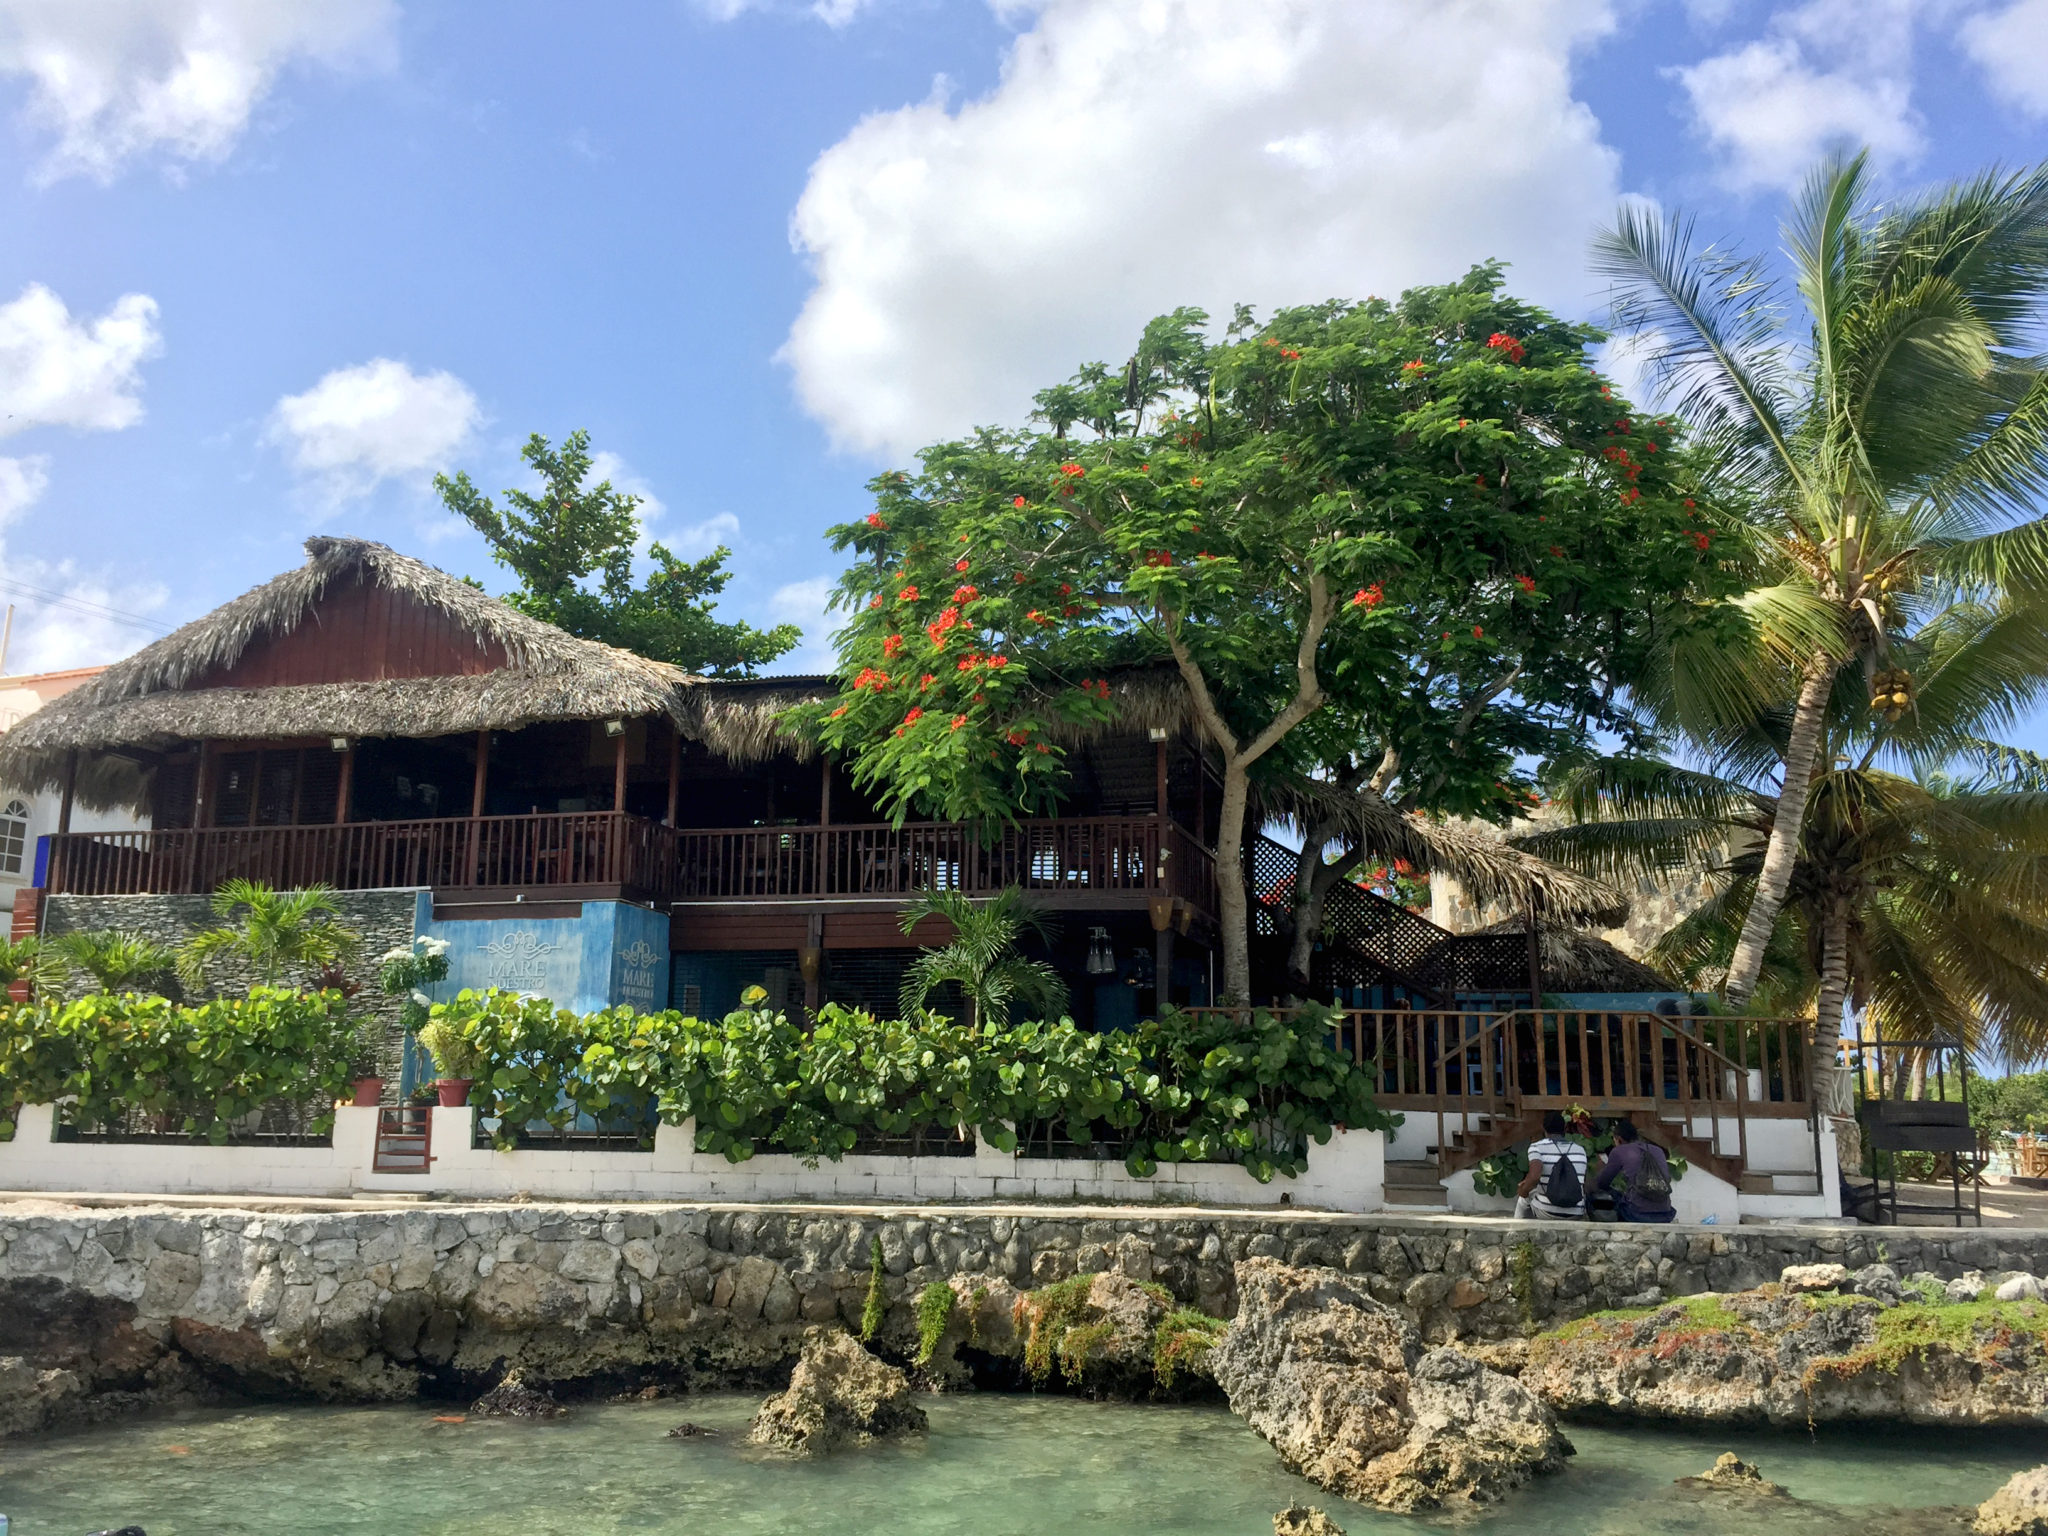 Republique_dominicaine_roadtrip_bayahibe_restaurant_japonais_mer_voyage